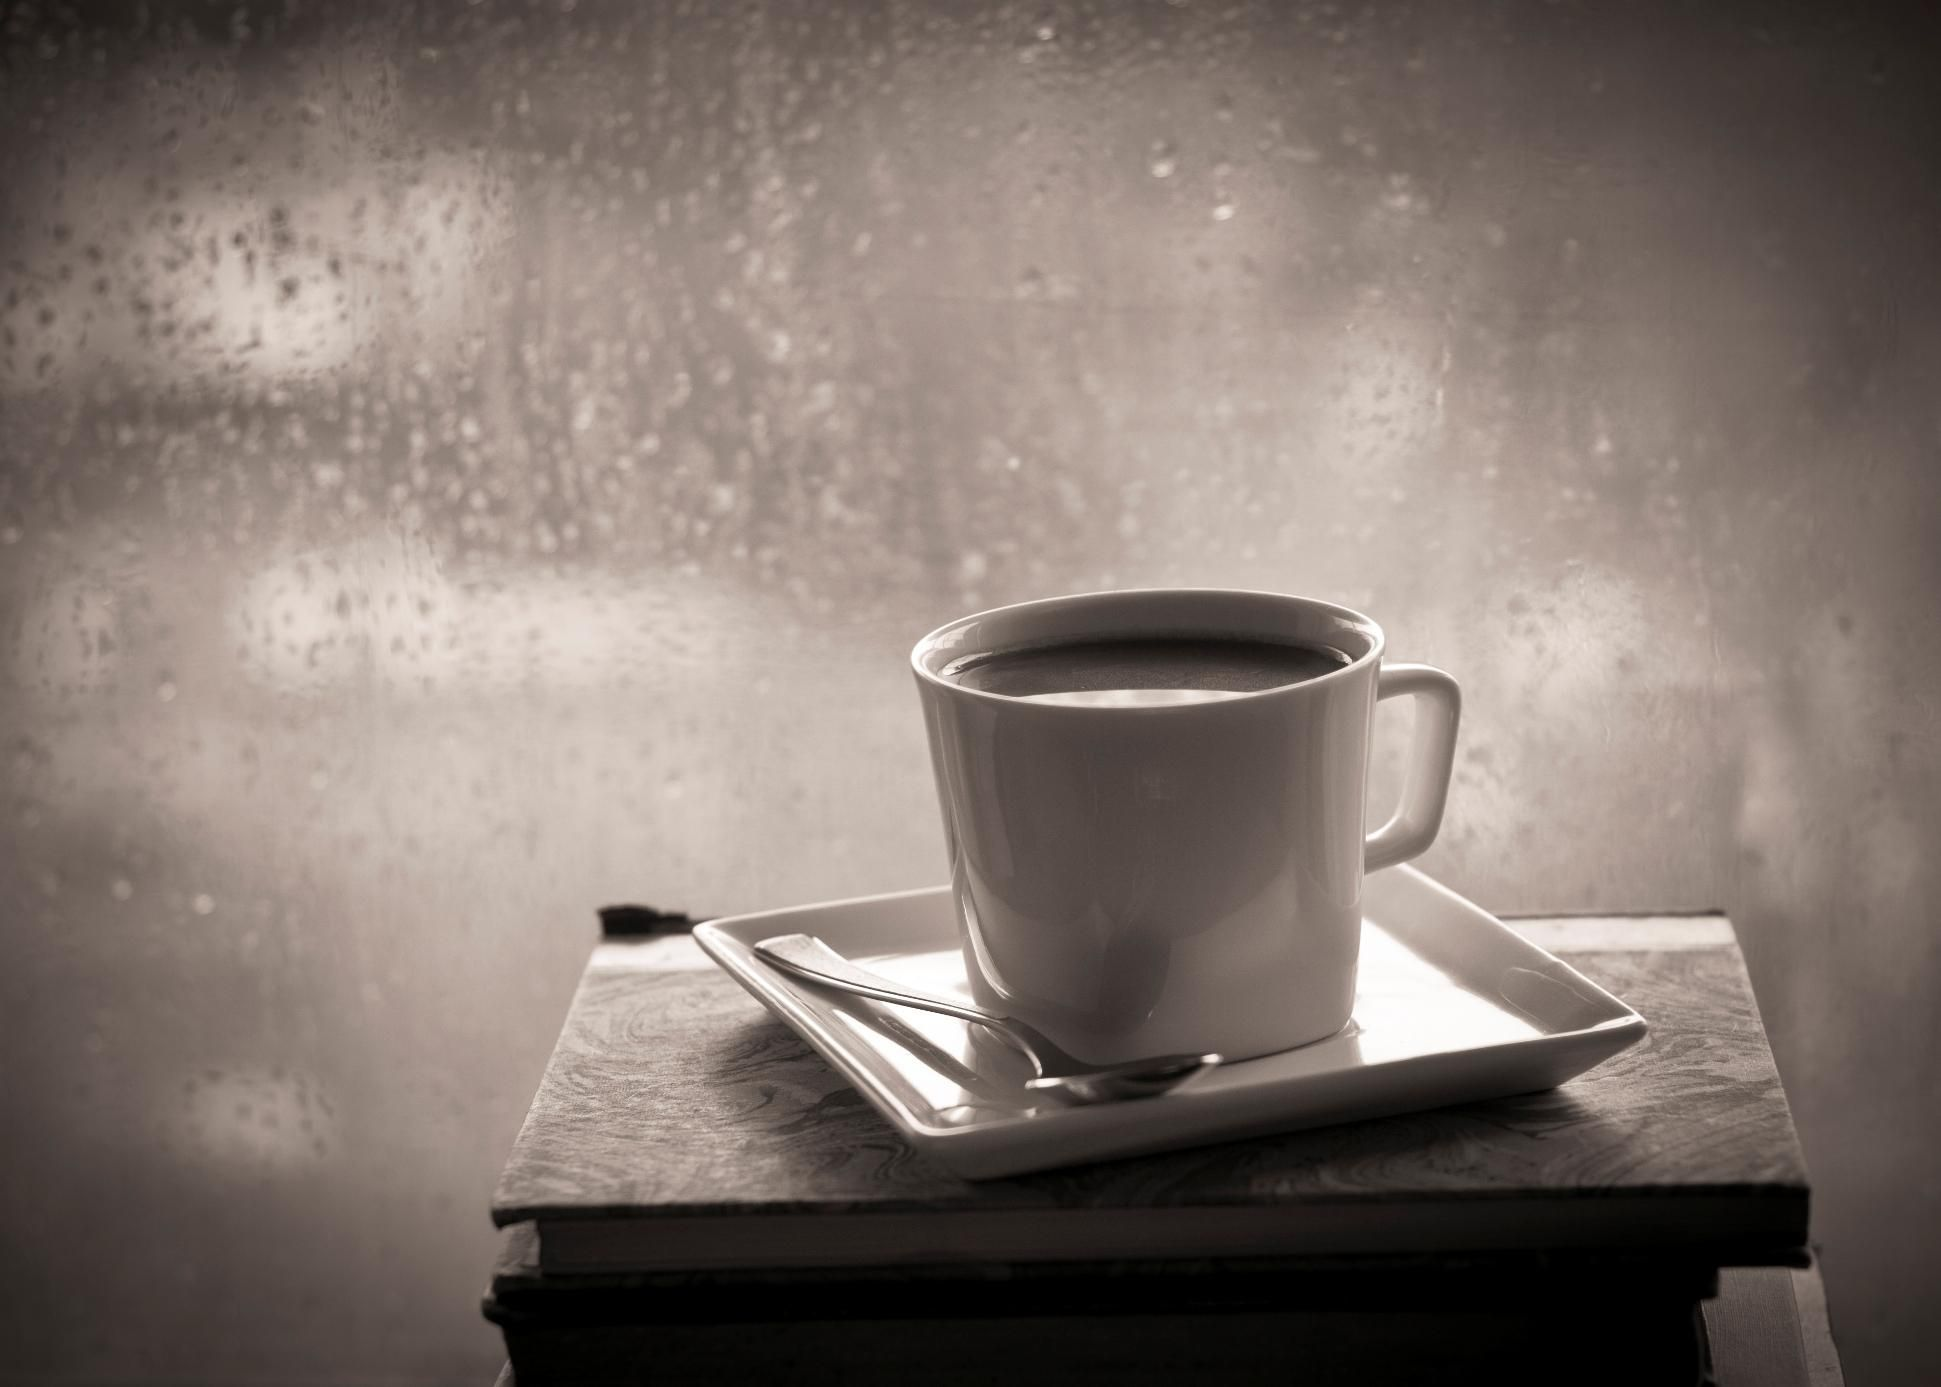 Coffee on a rainy day........ Coffee wallpaper iphone